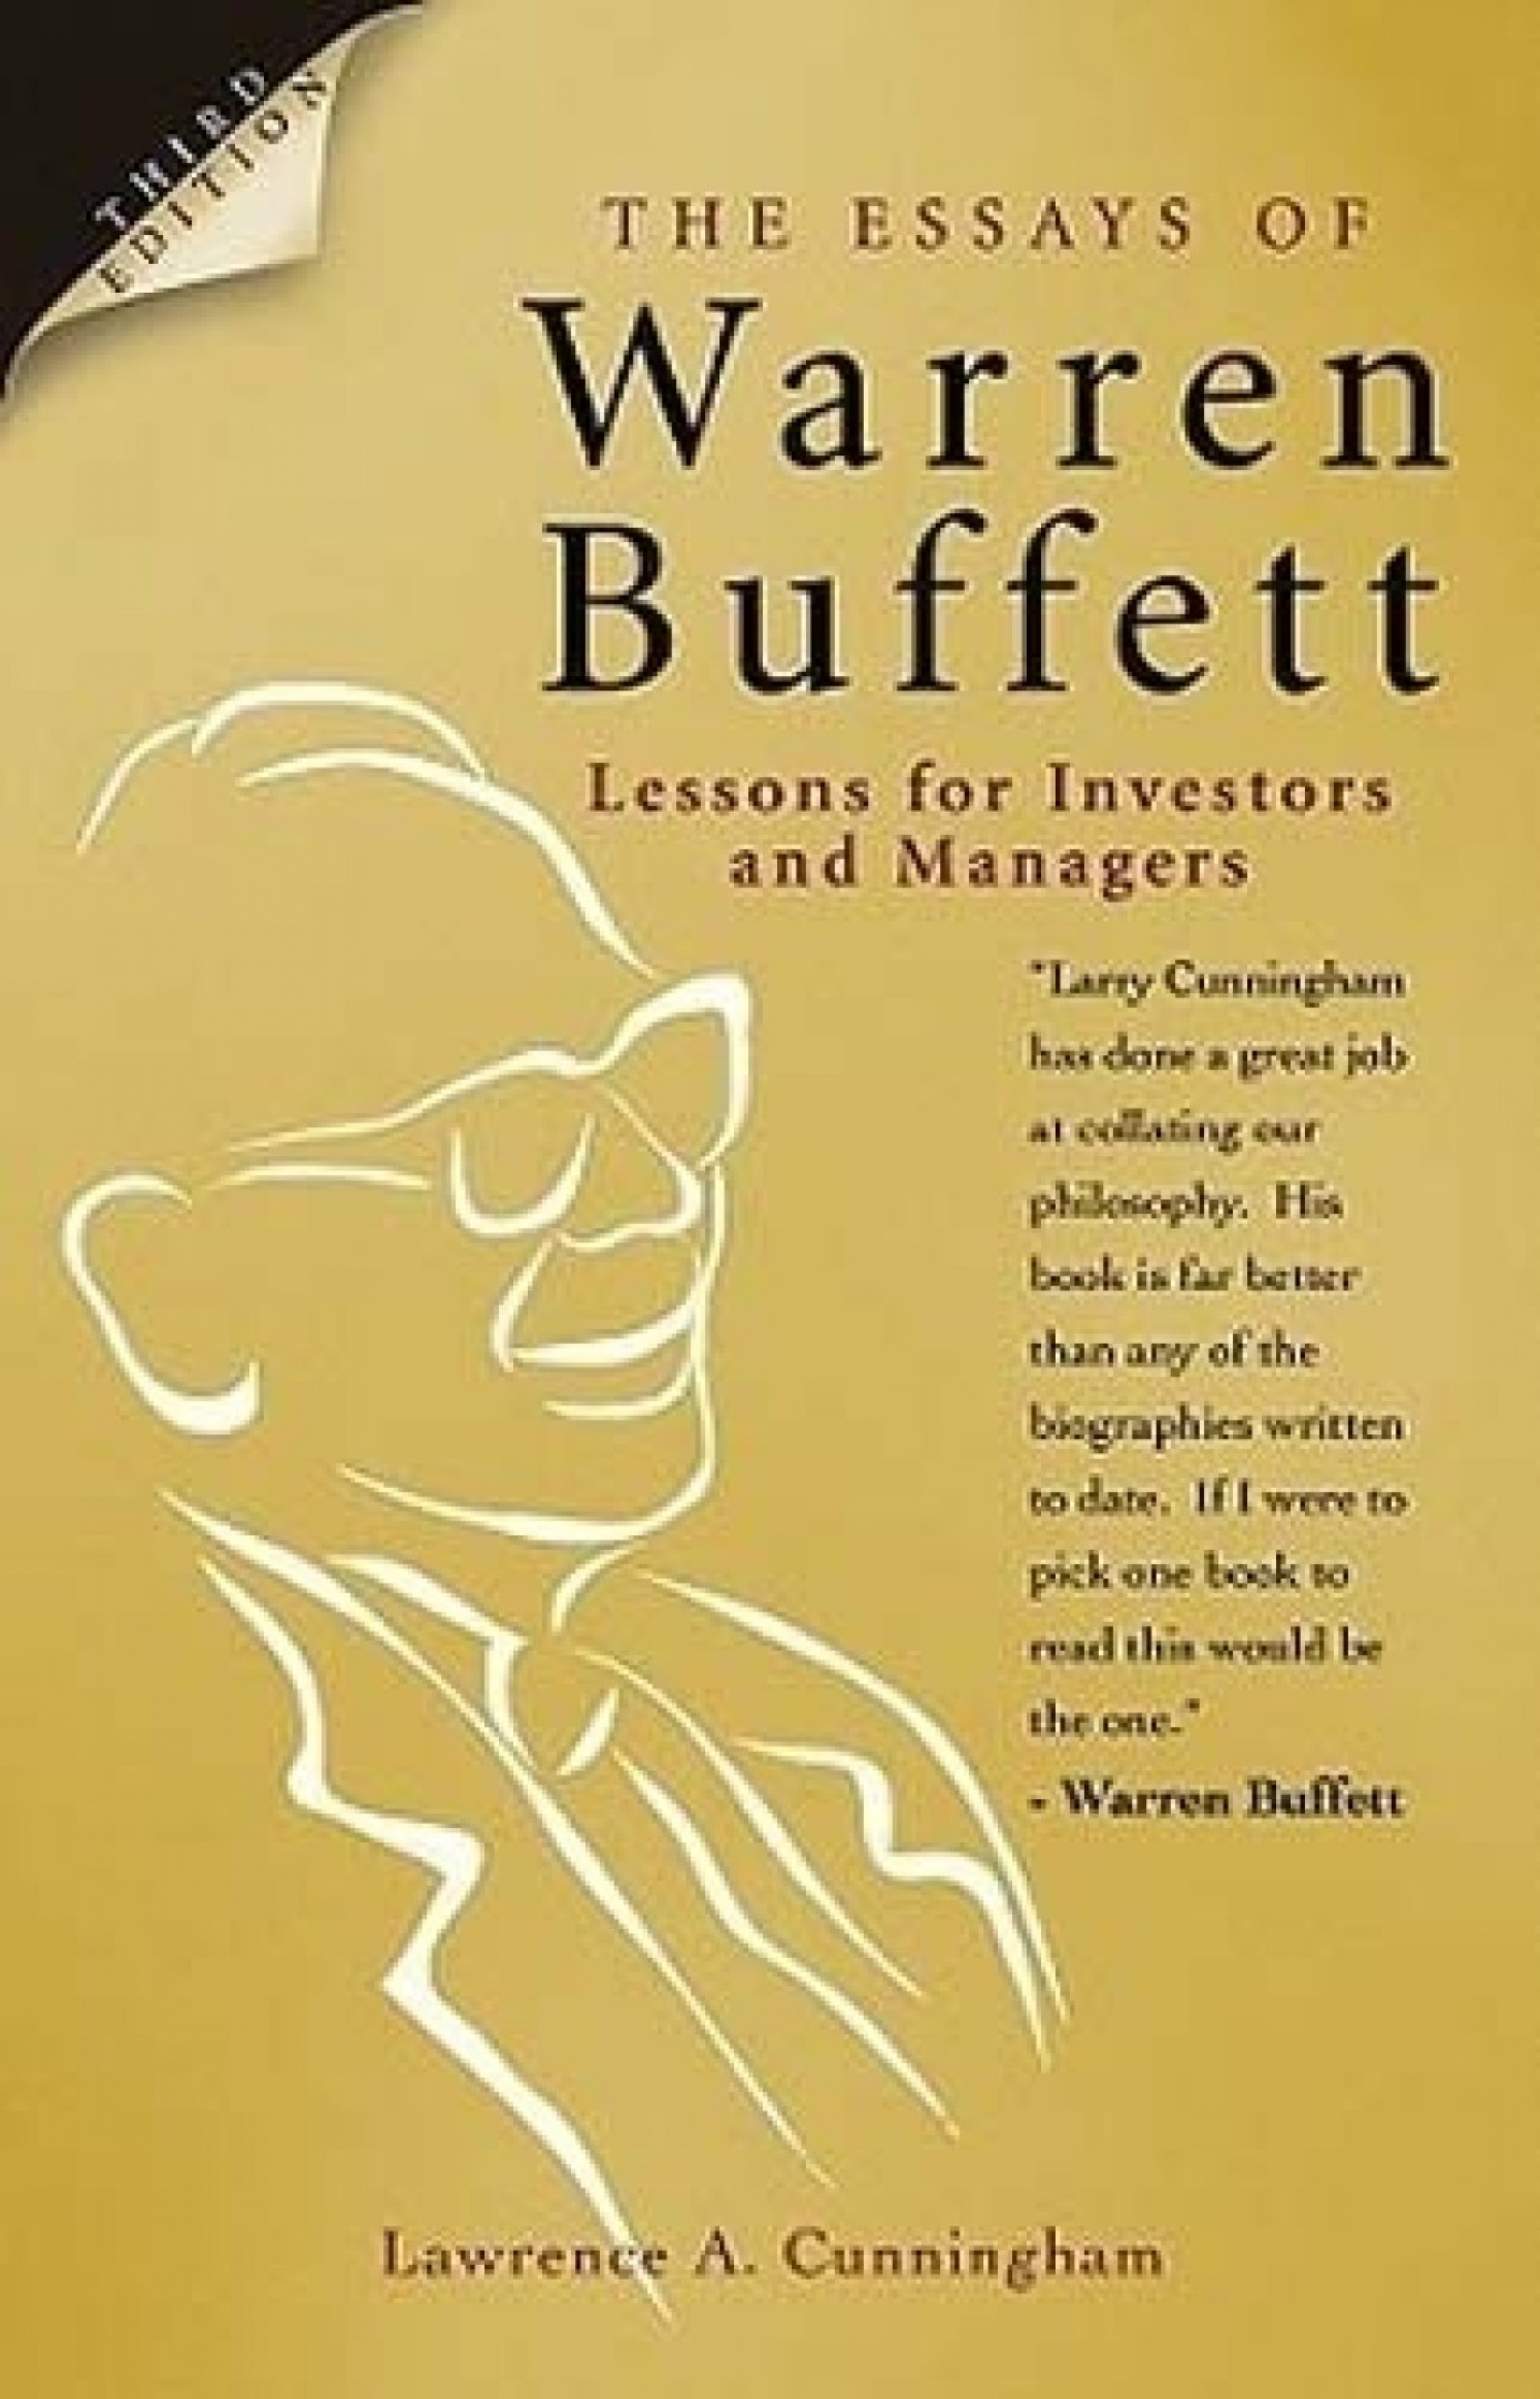 009 The Essays Of Warren Buffett Lessons For Investors And Managers Original Imaefwkrmxazxvdeq90 Essay Striking 4th Edition Free Pdf 1920